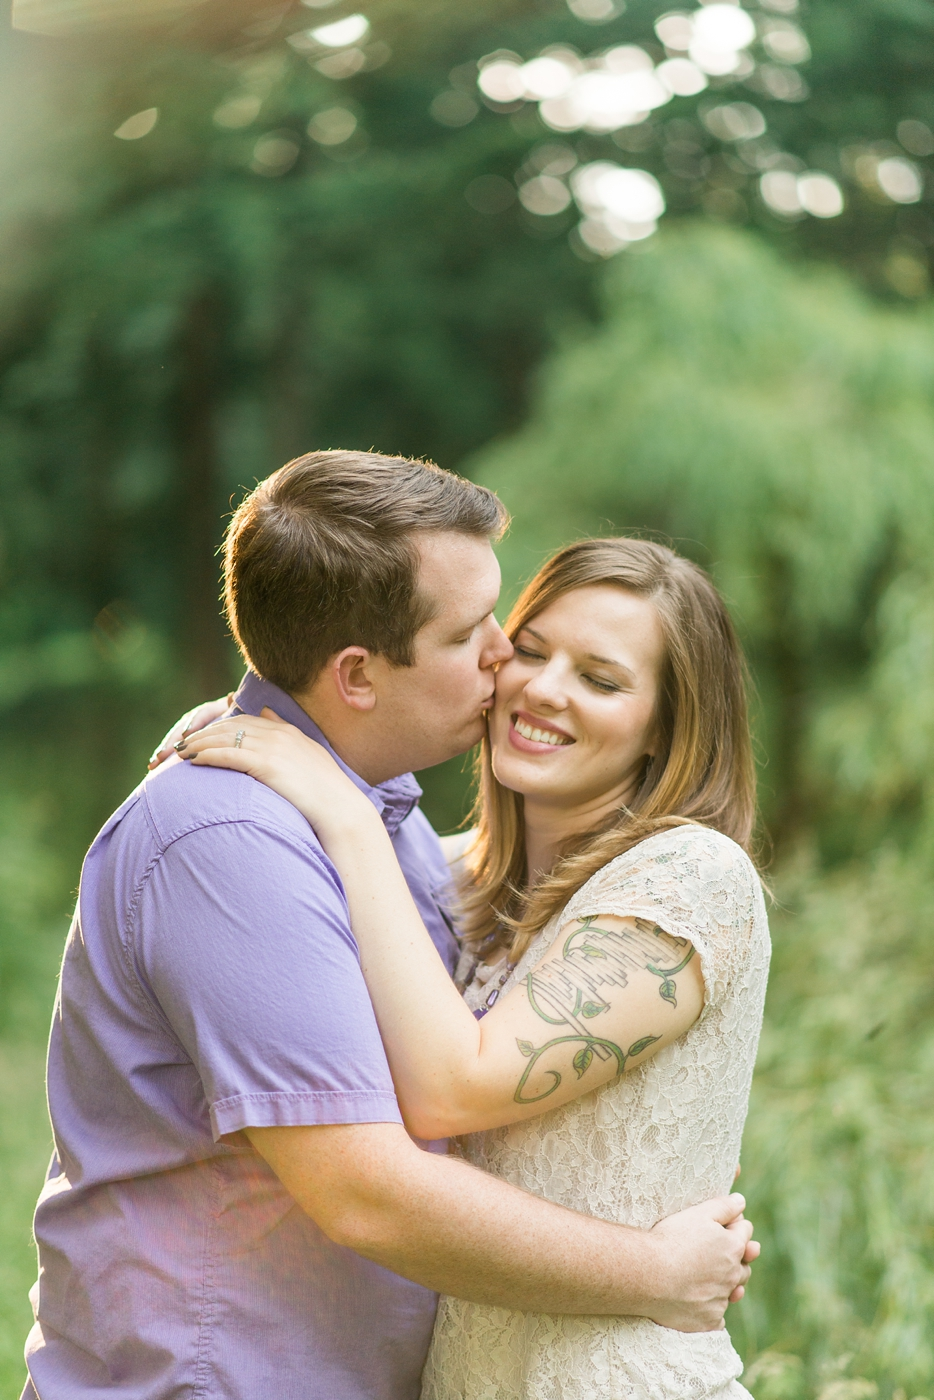 engagement-photography-portland-oregon-hoyt-arboretum-washington-park-romantic-couples-portraits-sweet-kiss-nature-natural-light-forest-field-shelley-marie-photo-1